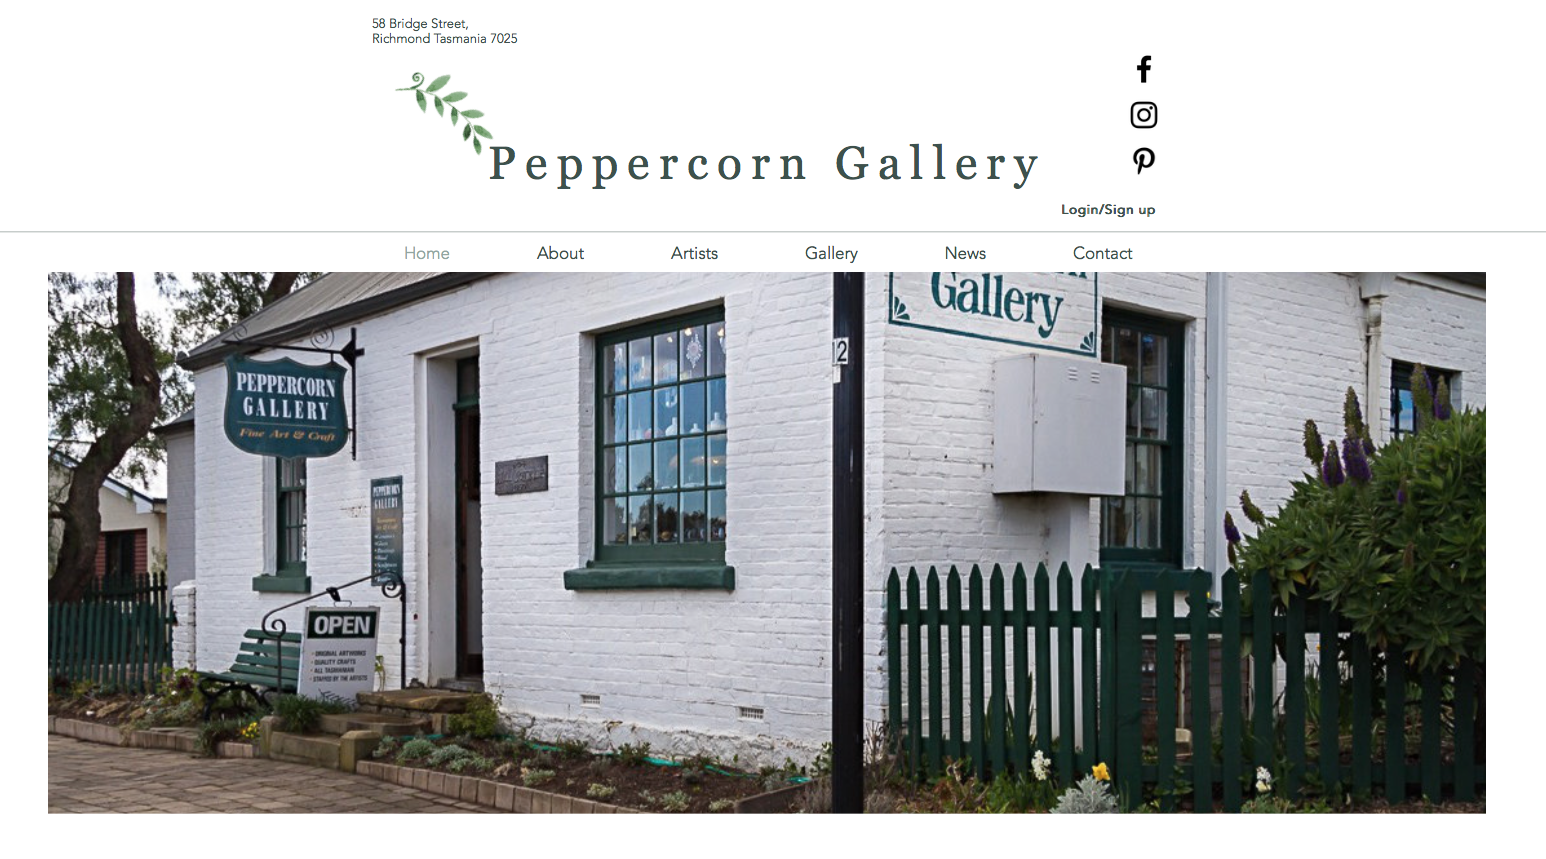 Peppercorn Gallery